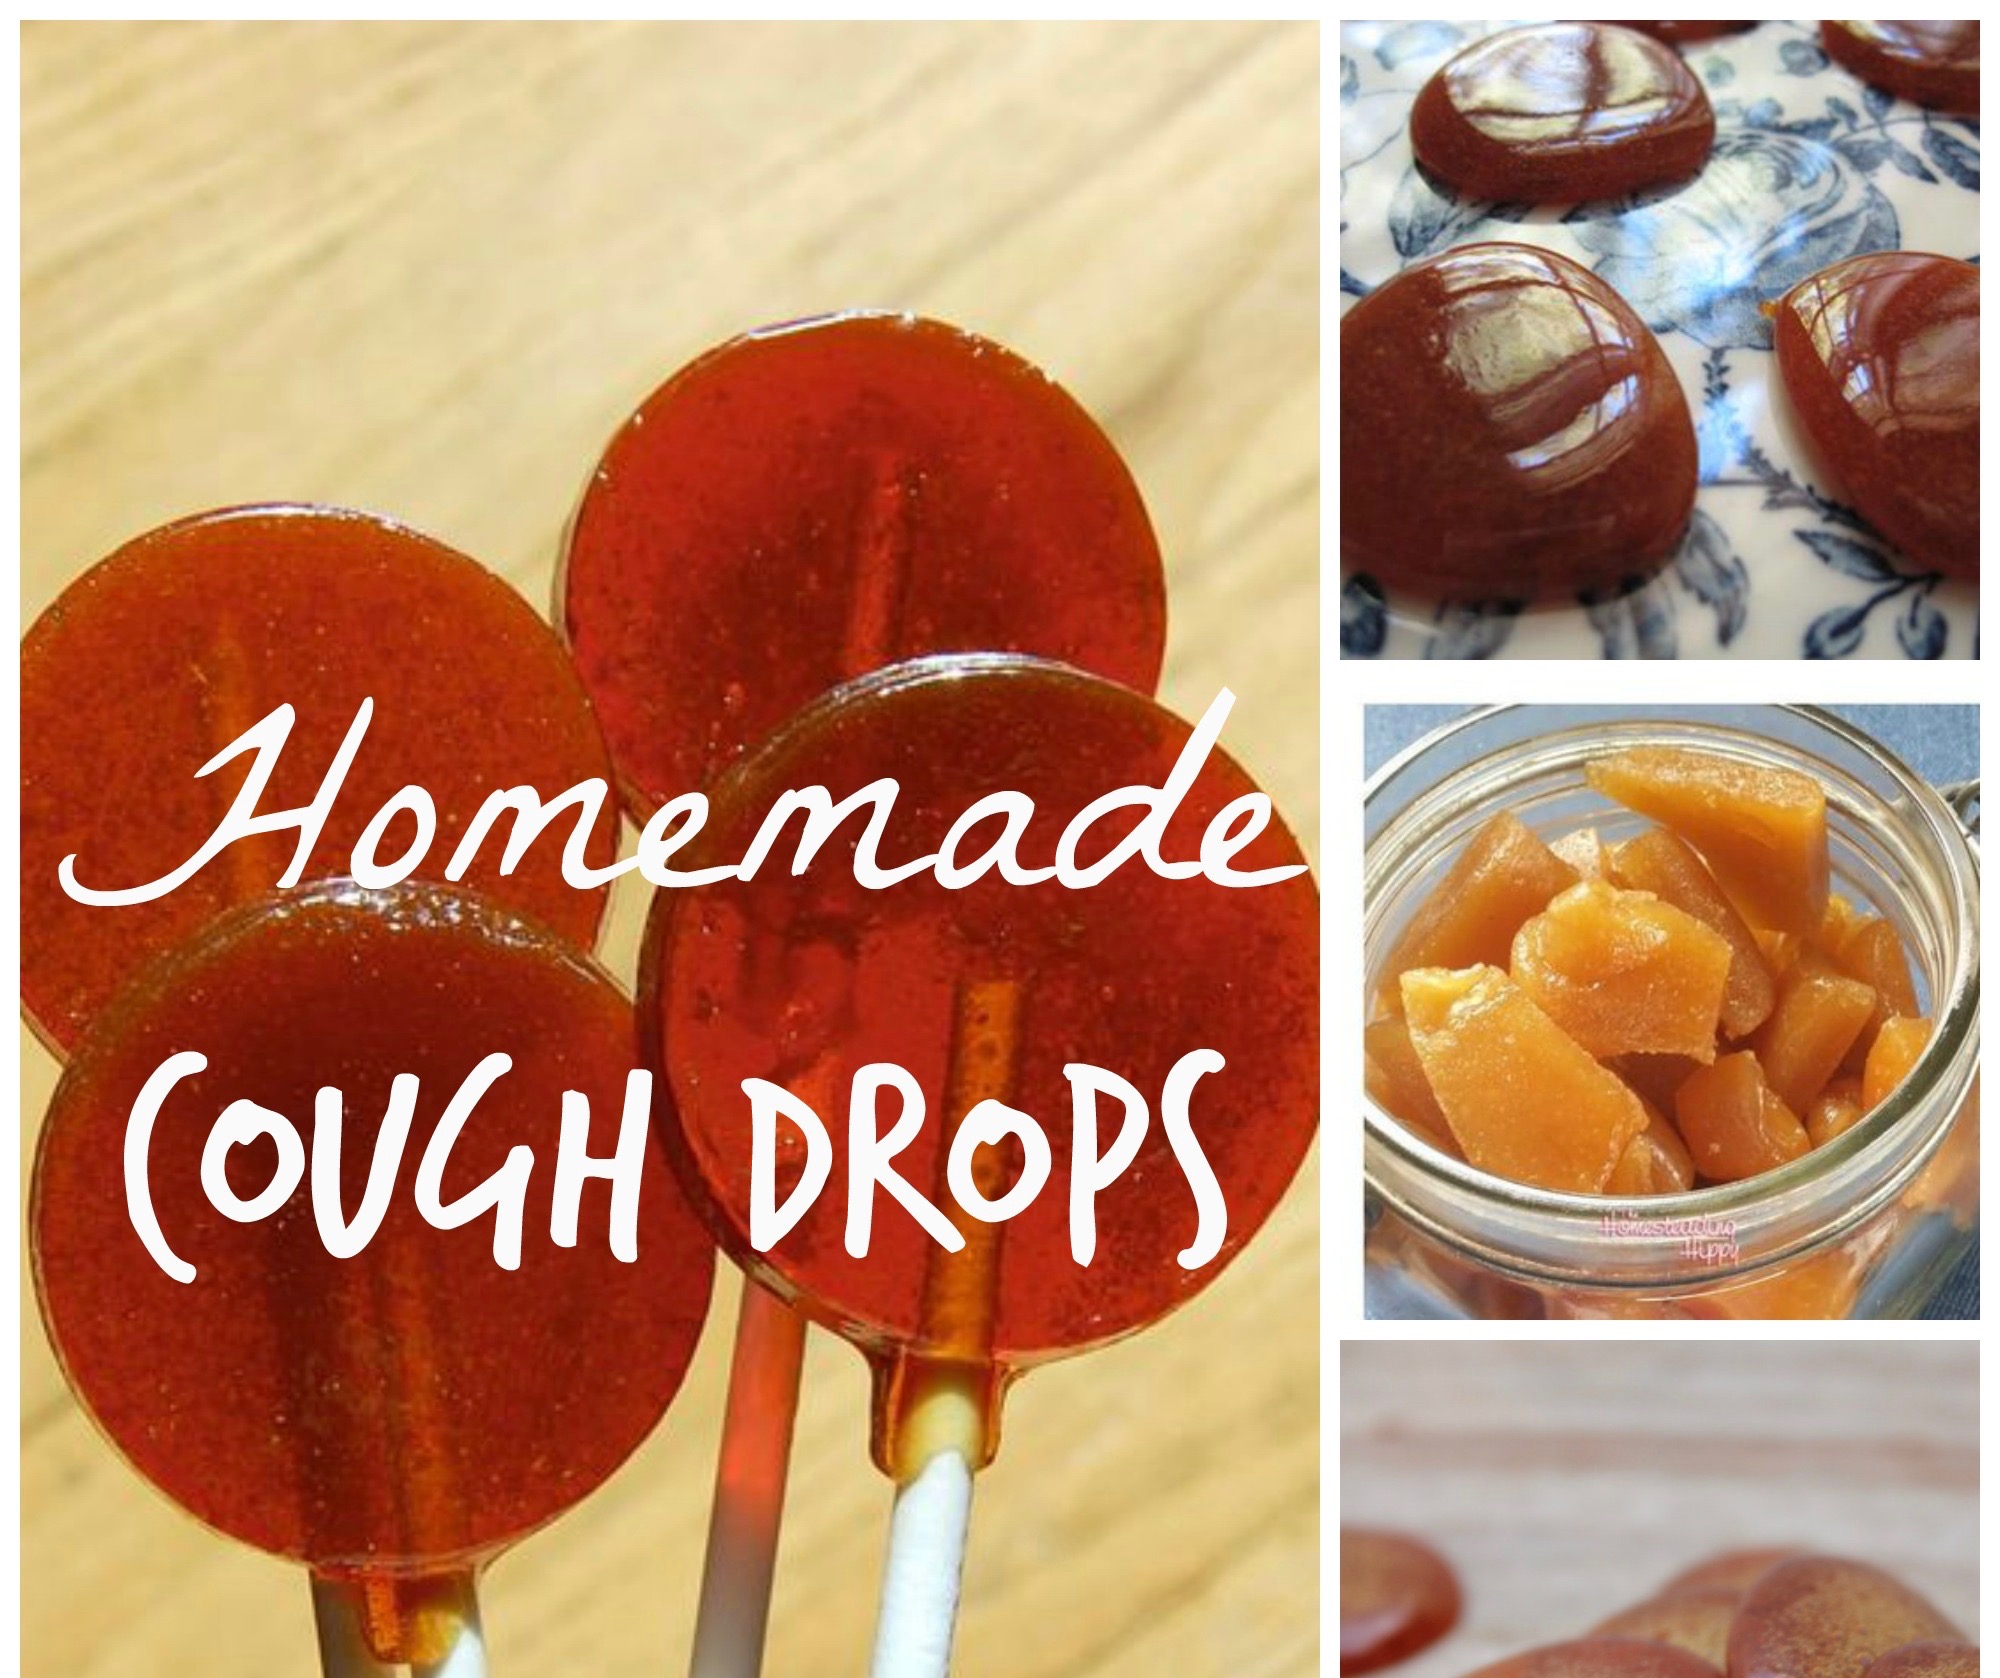 homemade-coughdrops (1)